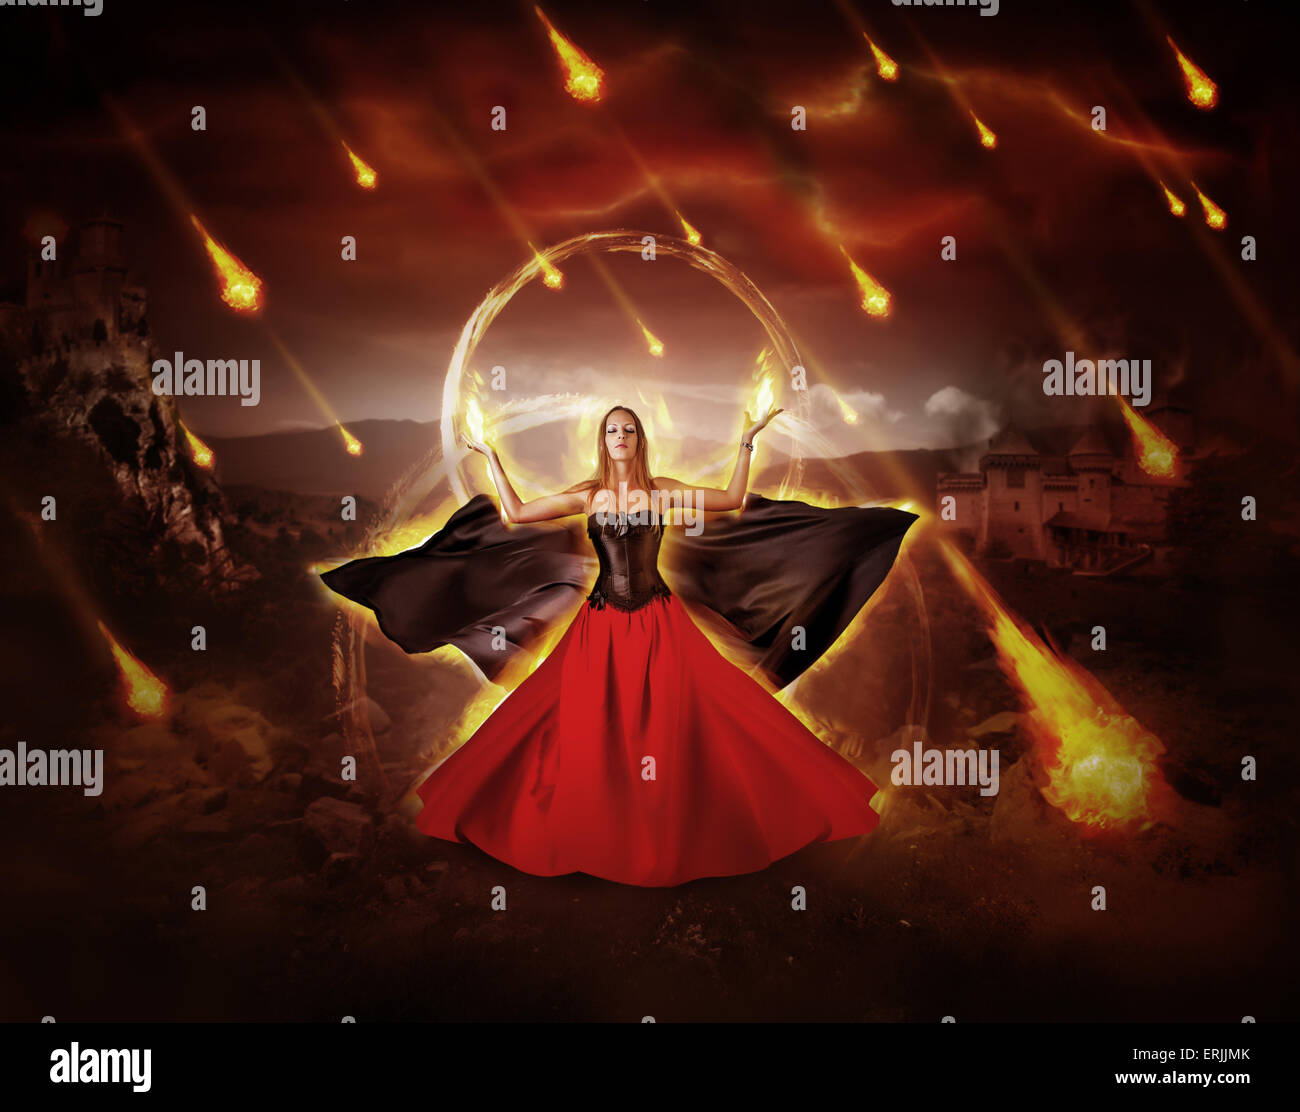 woman fire mage in medieval dress with developing mantle conjured fiery meteor rain - Stock Image